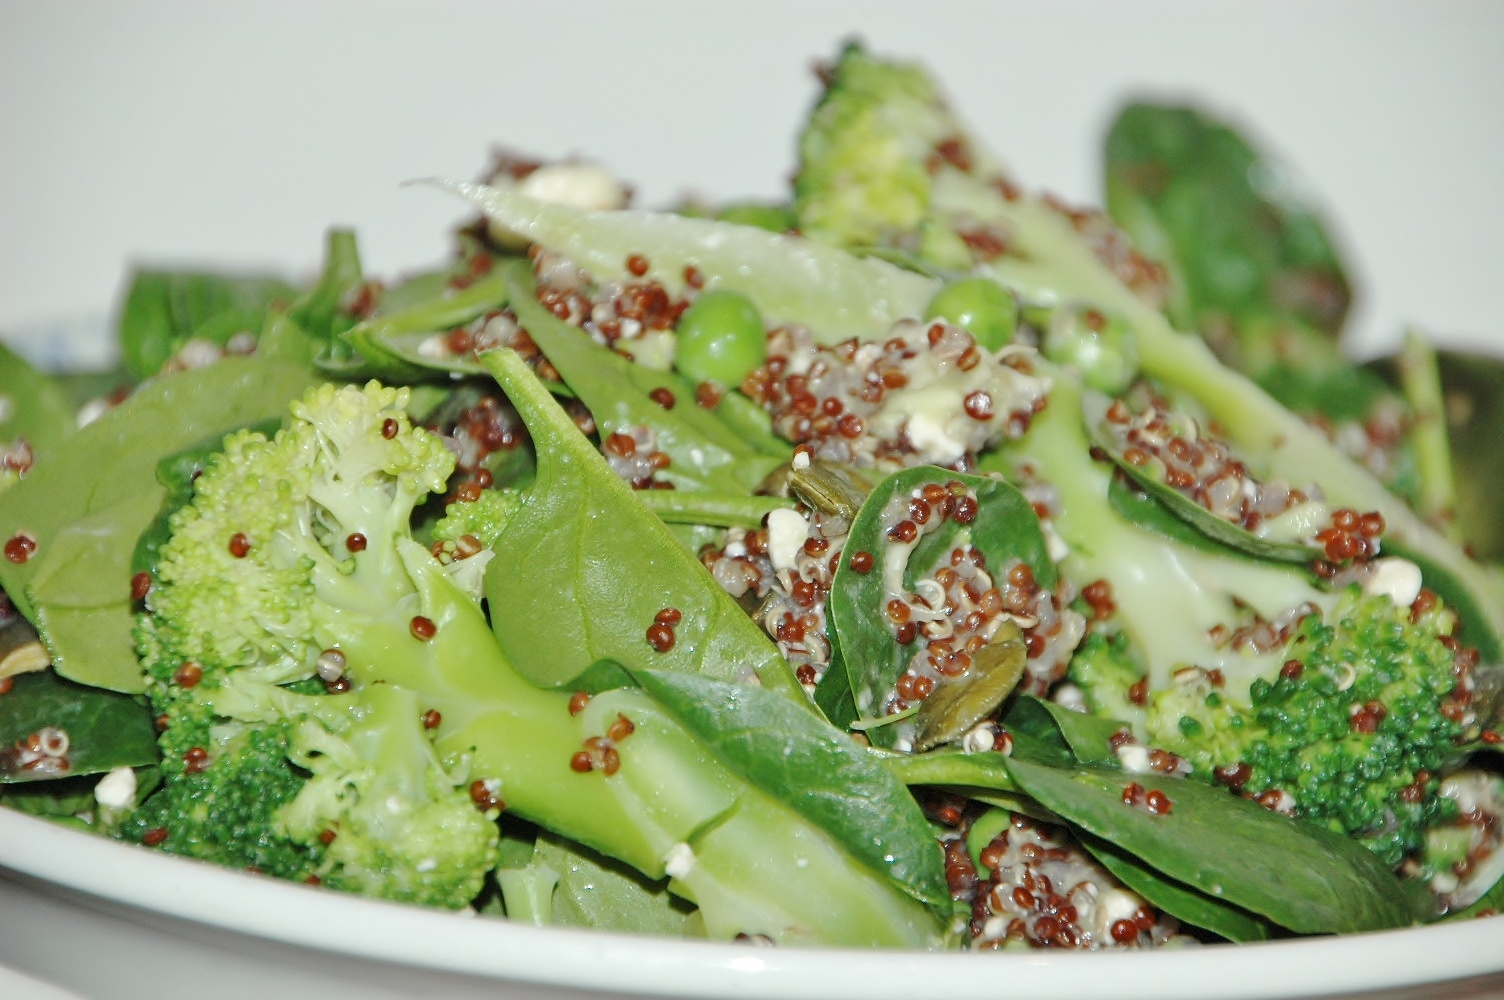 Quinoa with greens and pistachio pesto healthy home cafe i do love a jamie oliver recipe his no fuss attitude but careful blend of textures and flavours really is something to be admired and this salad is a good forumfinder Choice Image